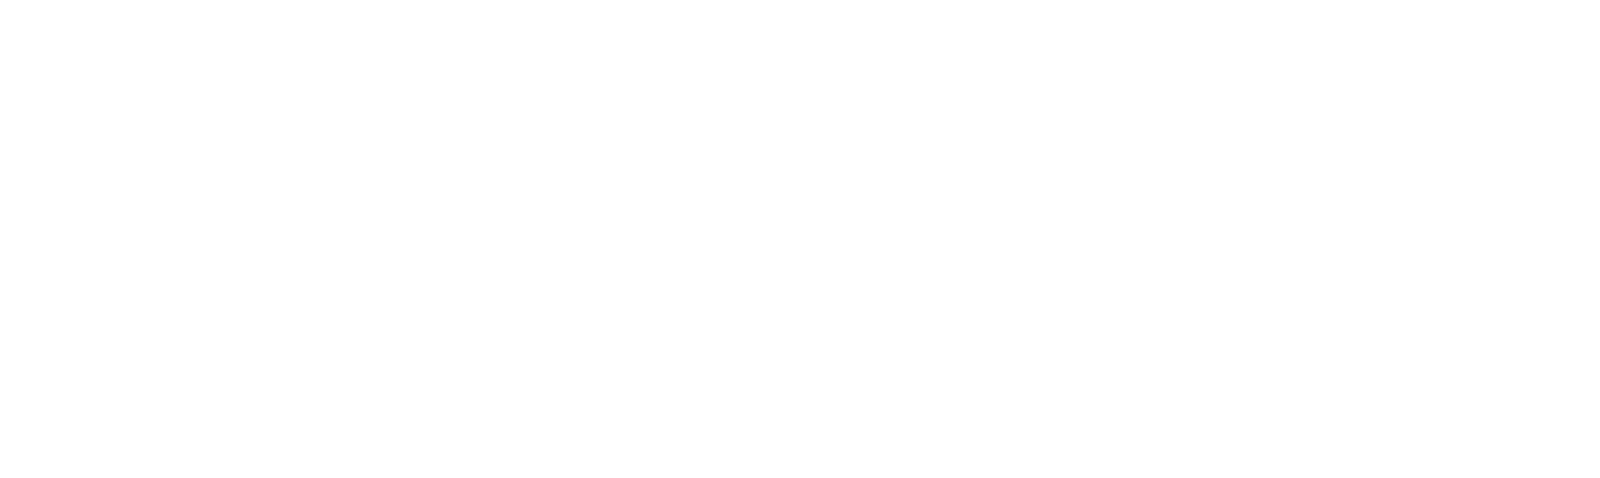 Natural Horseman Saddles